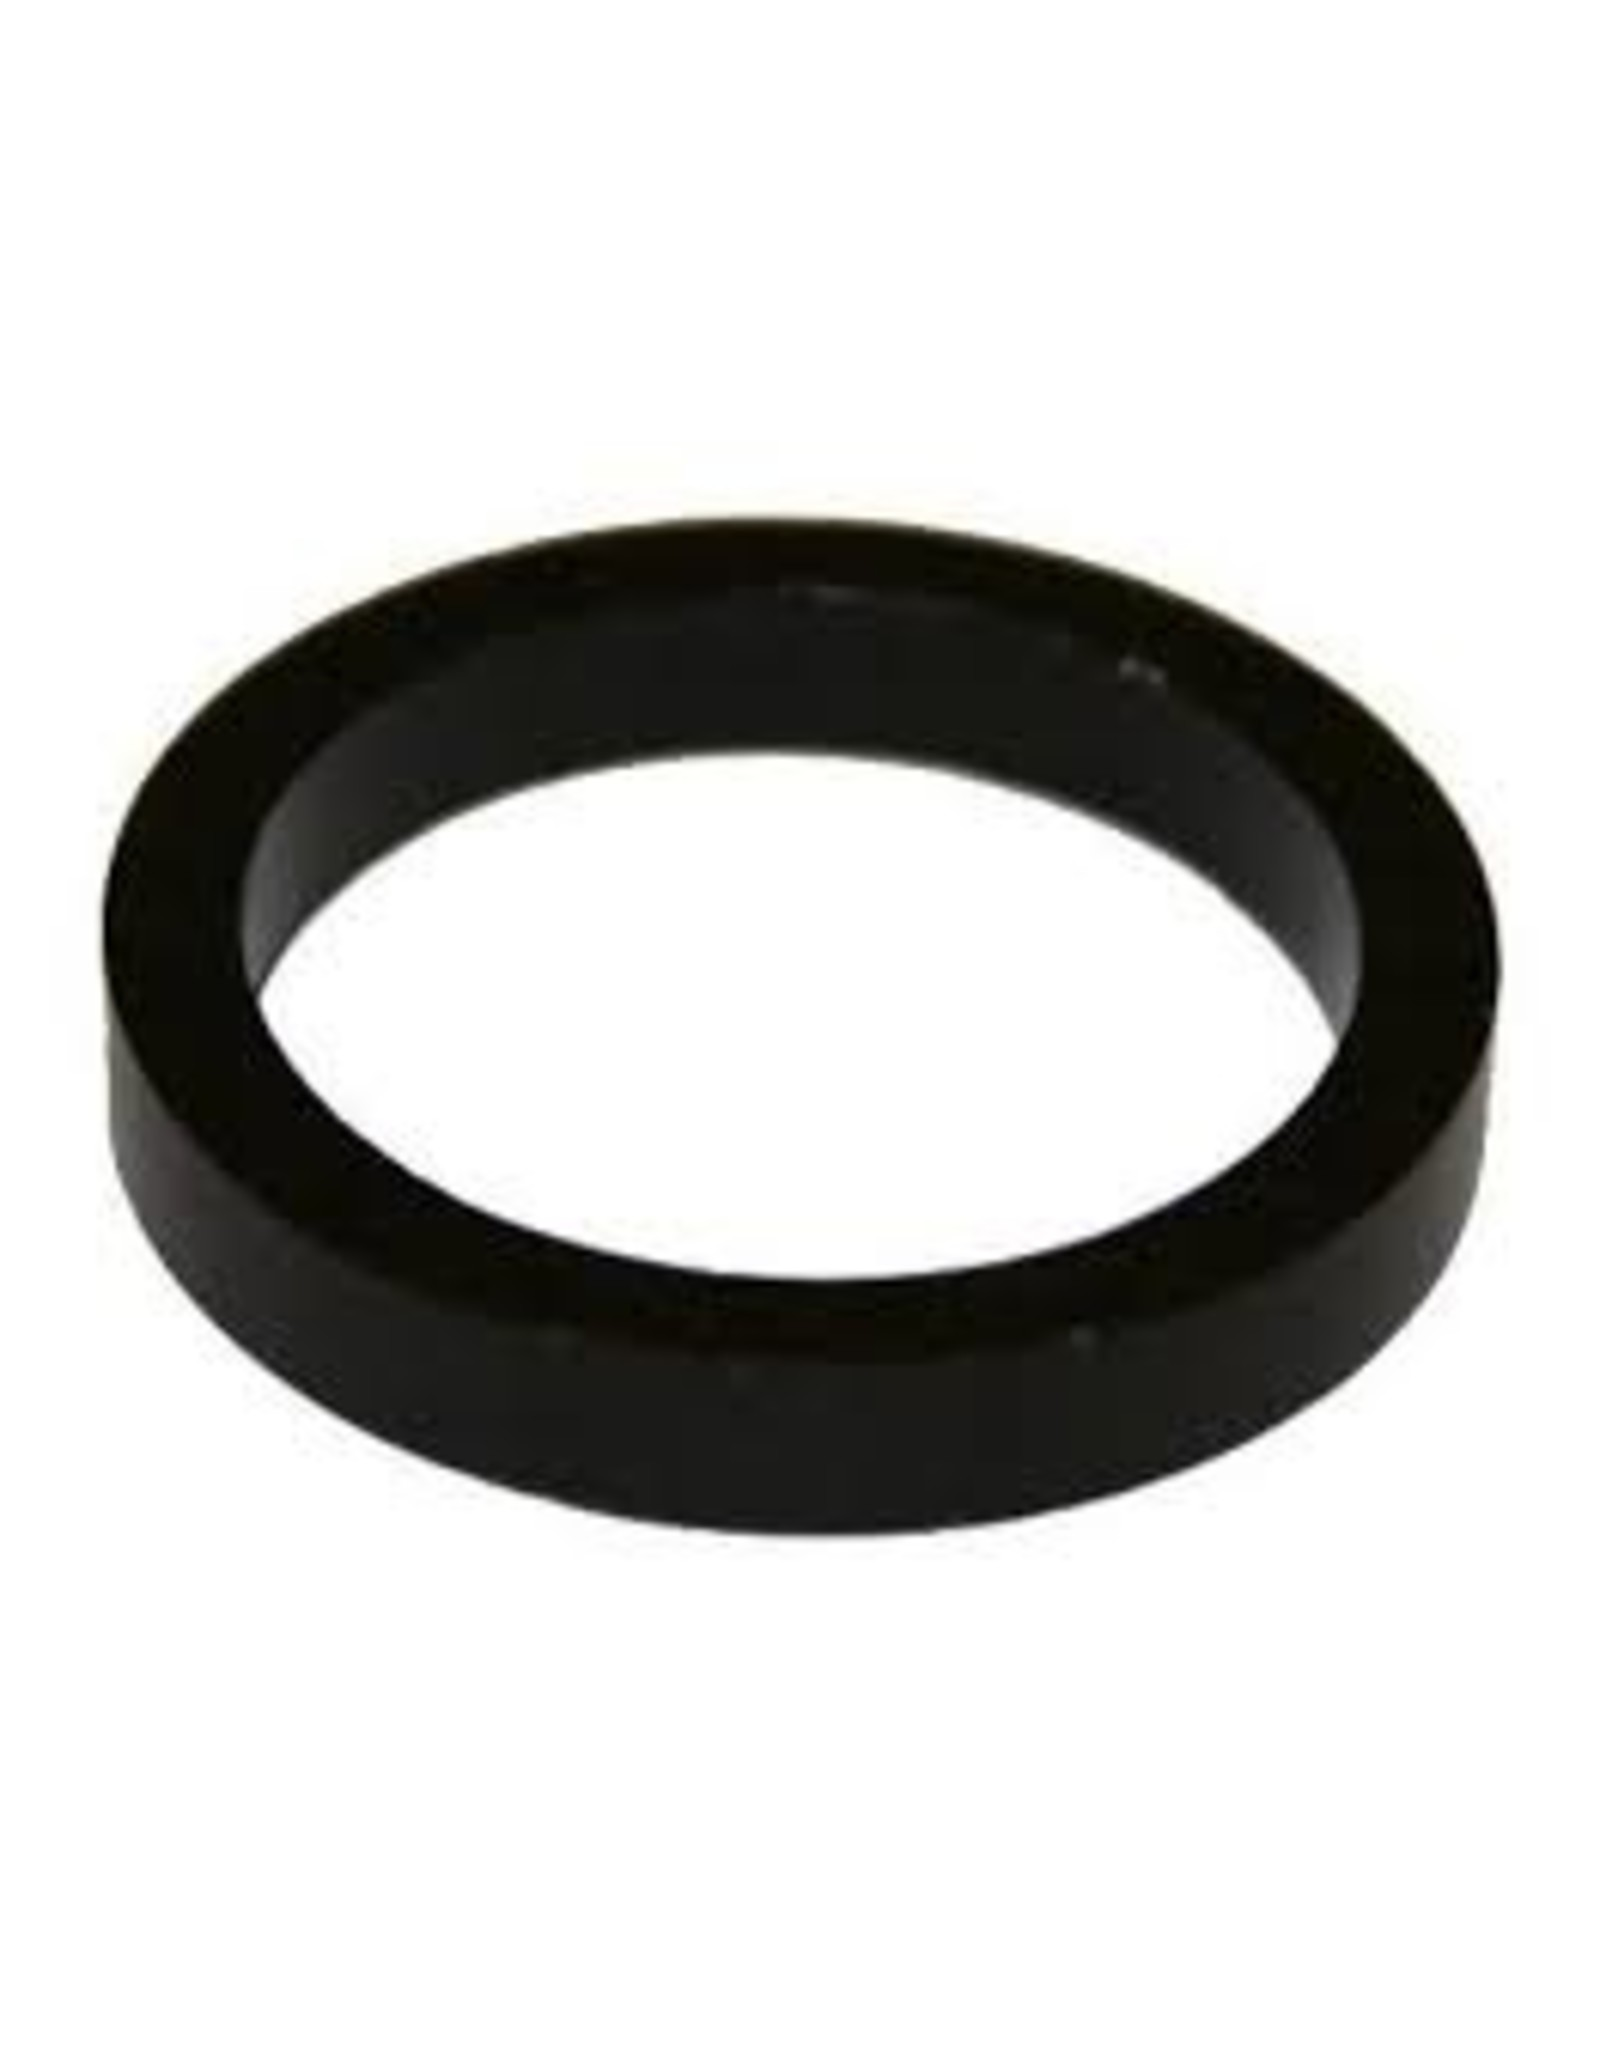 ECONO Non-Keyed Headset Spacers 28.6 x 10mm - Black